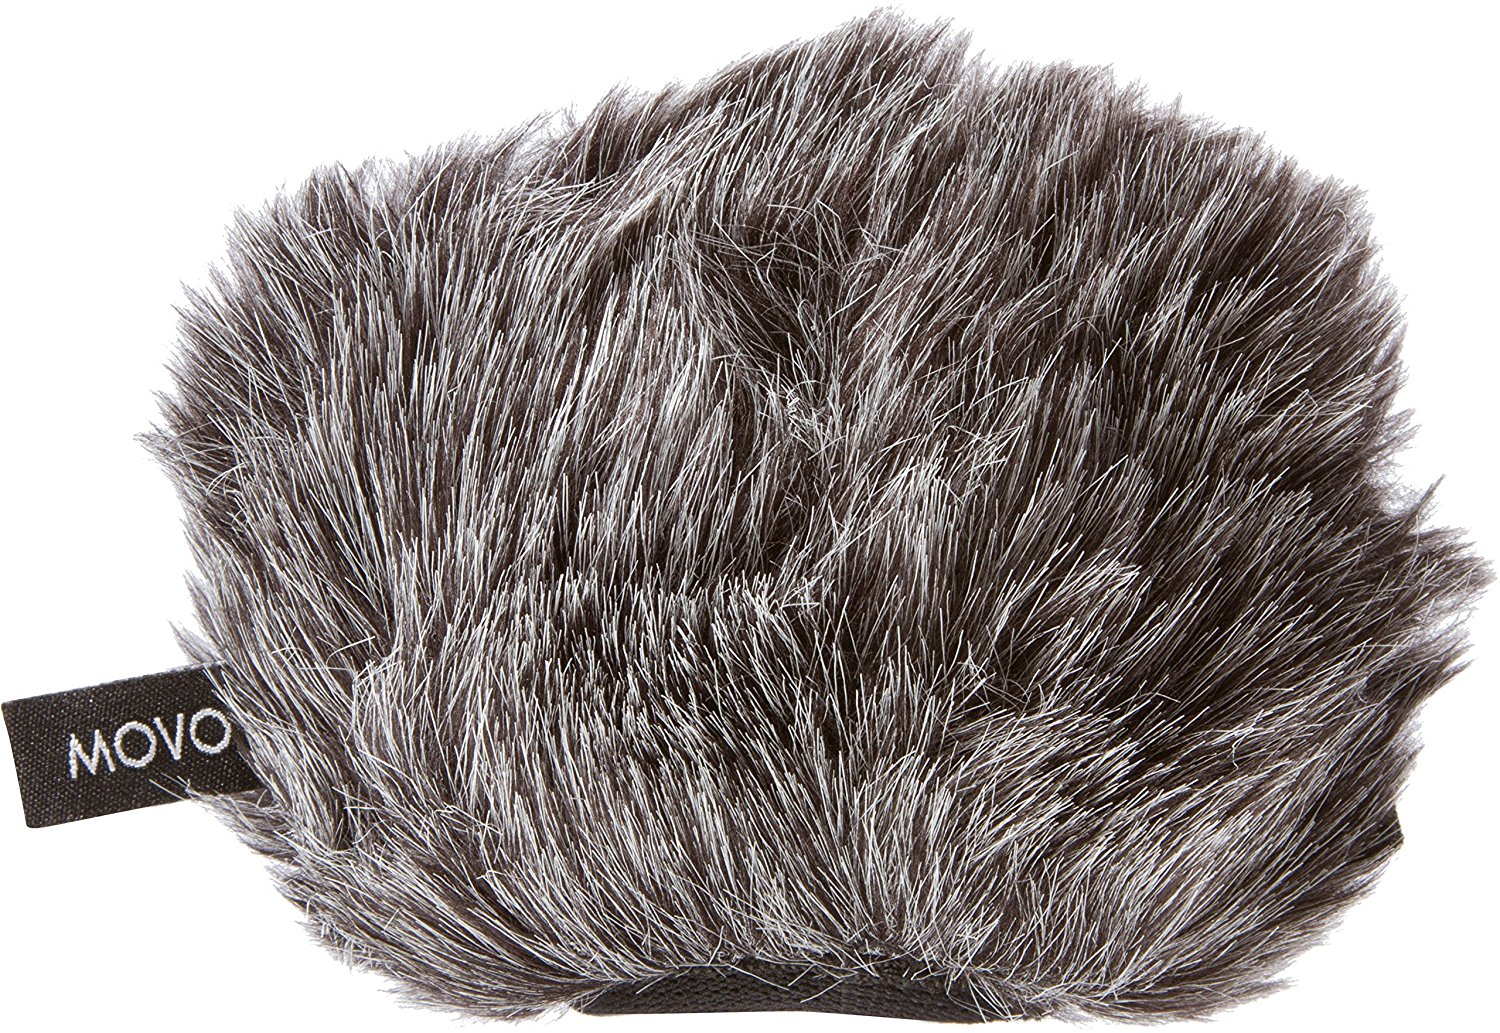 Movo WS-G9 Furry Outdoor Microphone Windscreen Muff for Portable Digital Recorders up to... by Movo